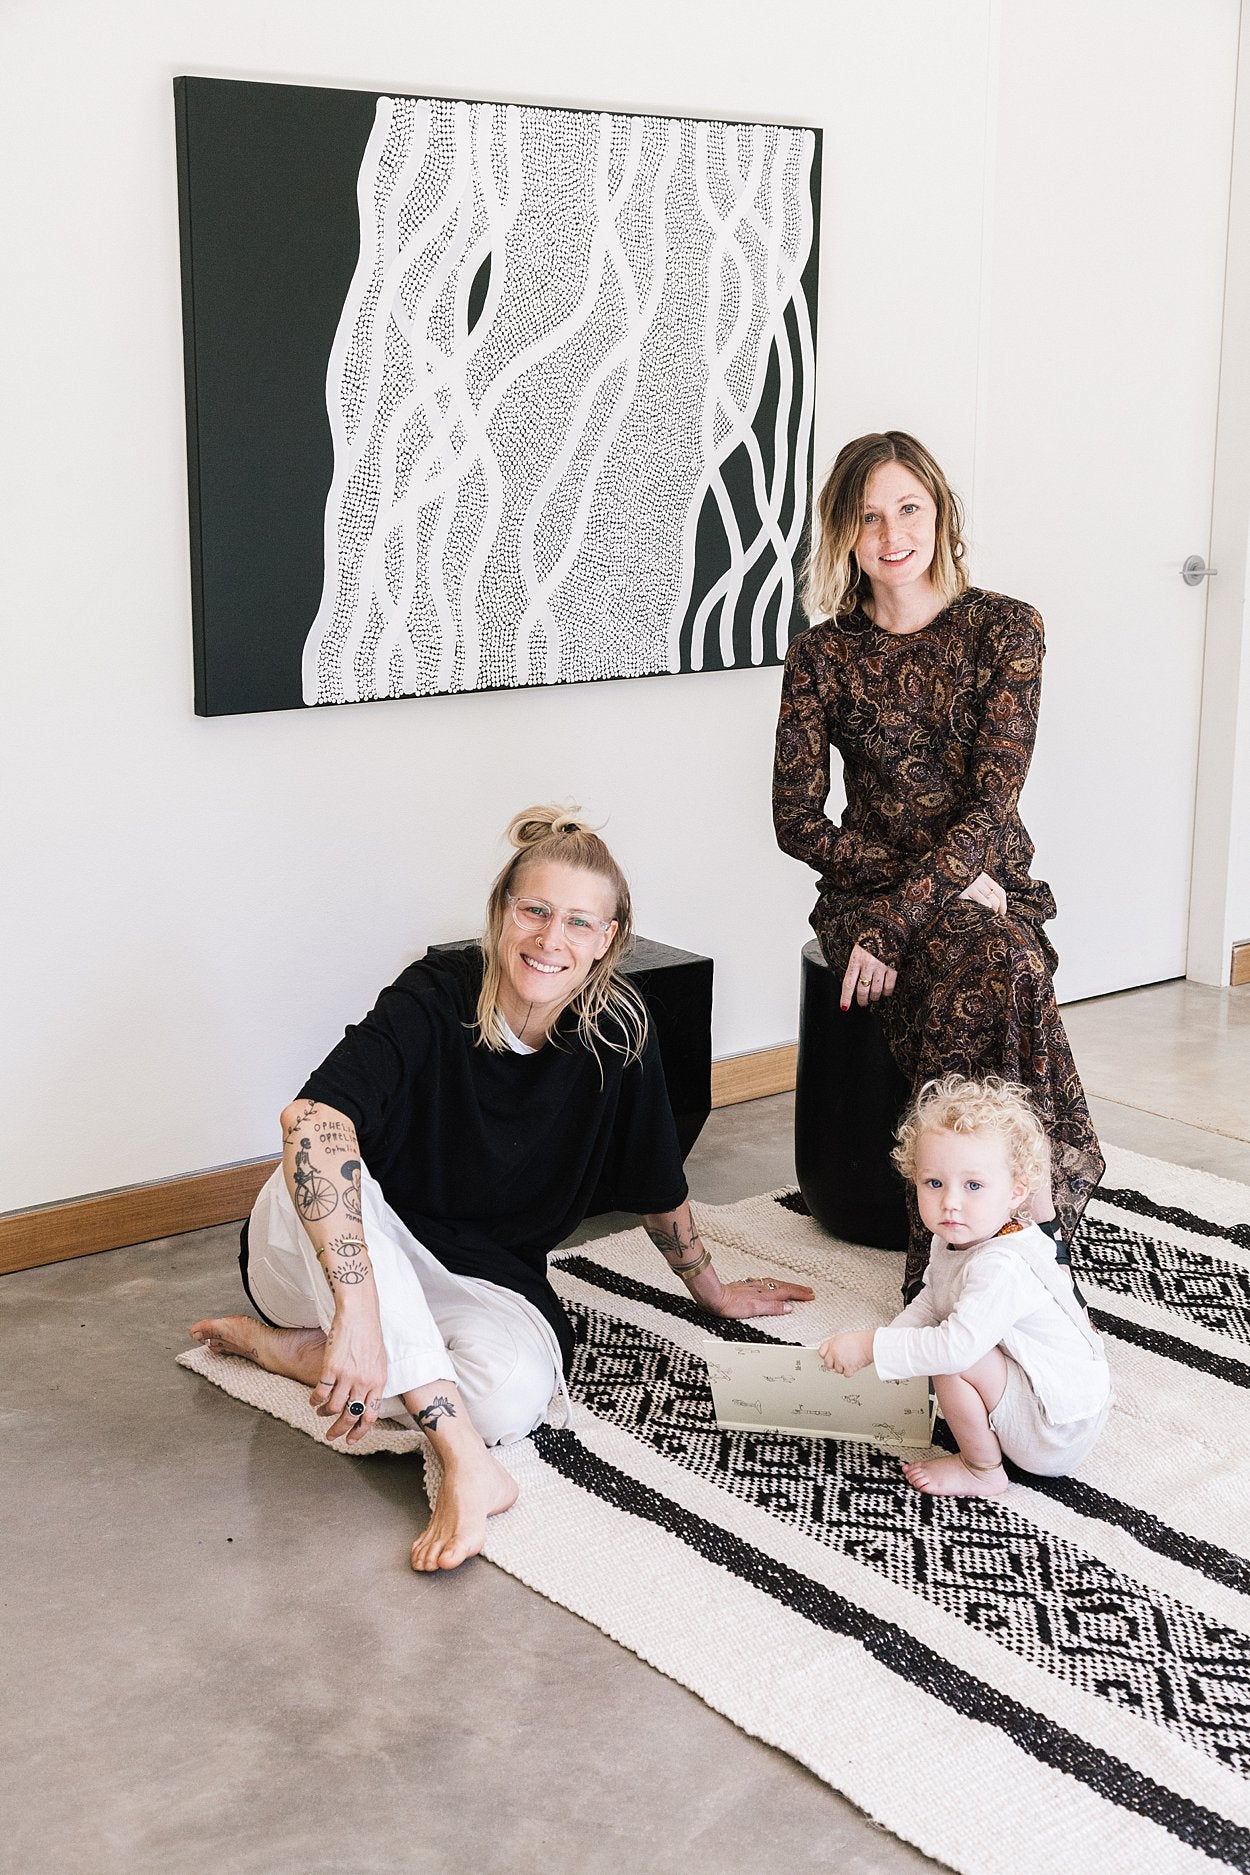 362aa0dca Between floor-to-ceiling glass windows that frame panoramic views, we took  a tour of the family home and spoke with Lia-Belle and Lotte about their  thriving ...